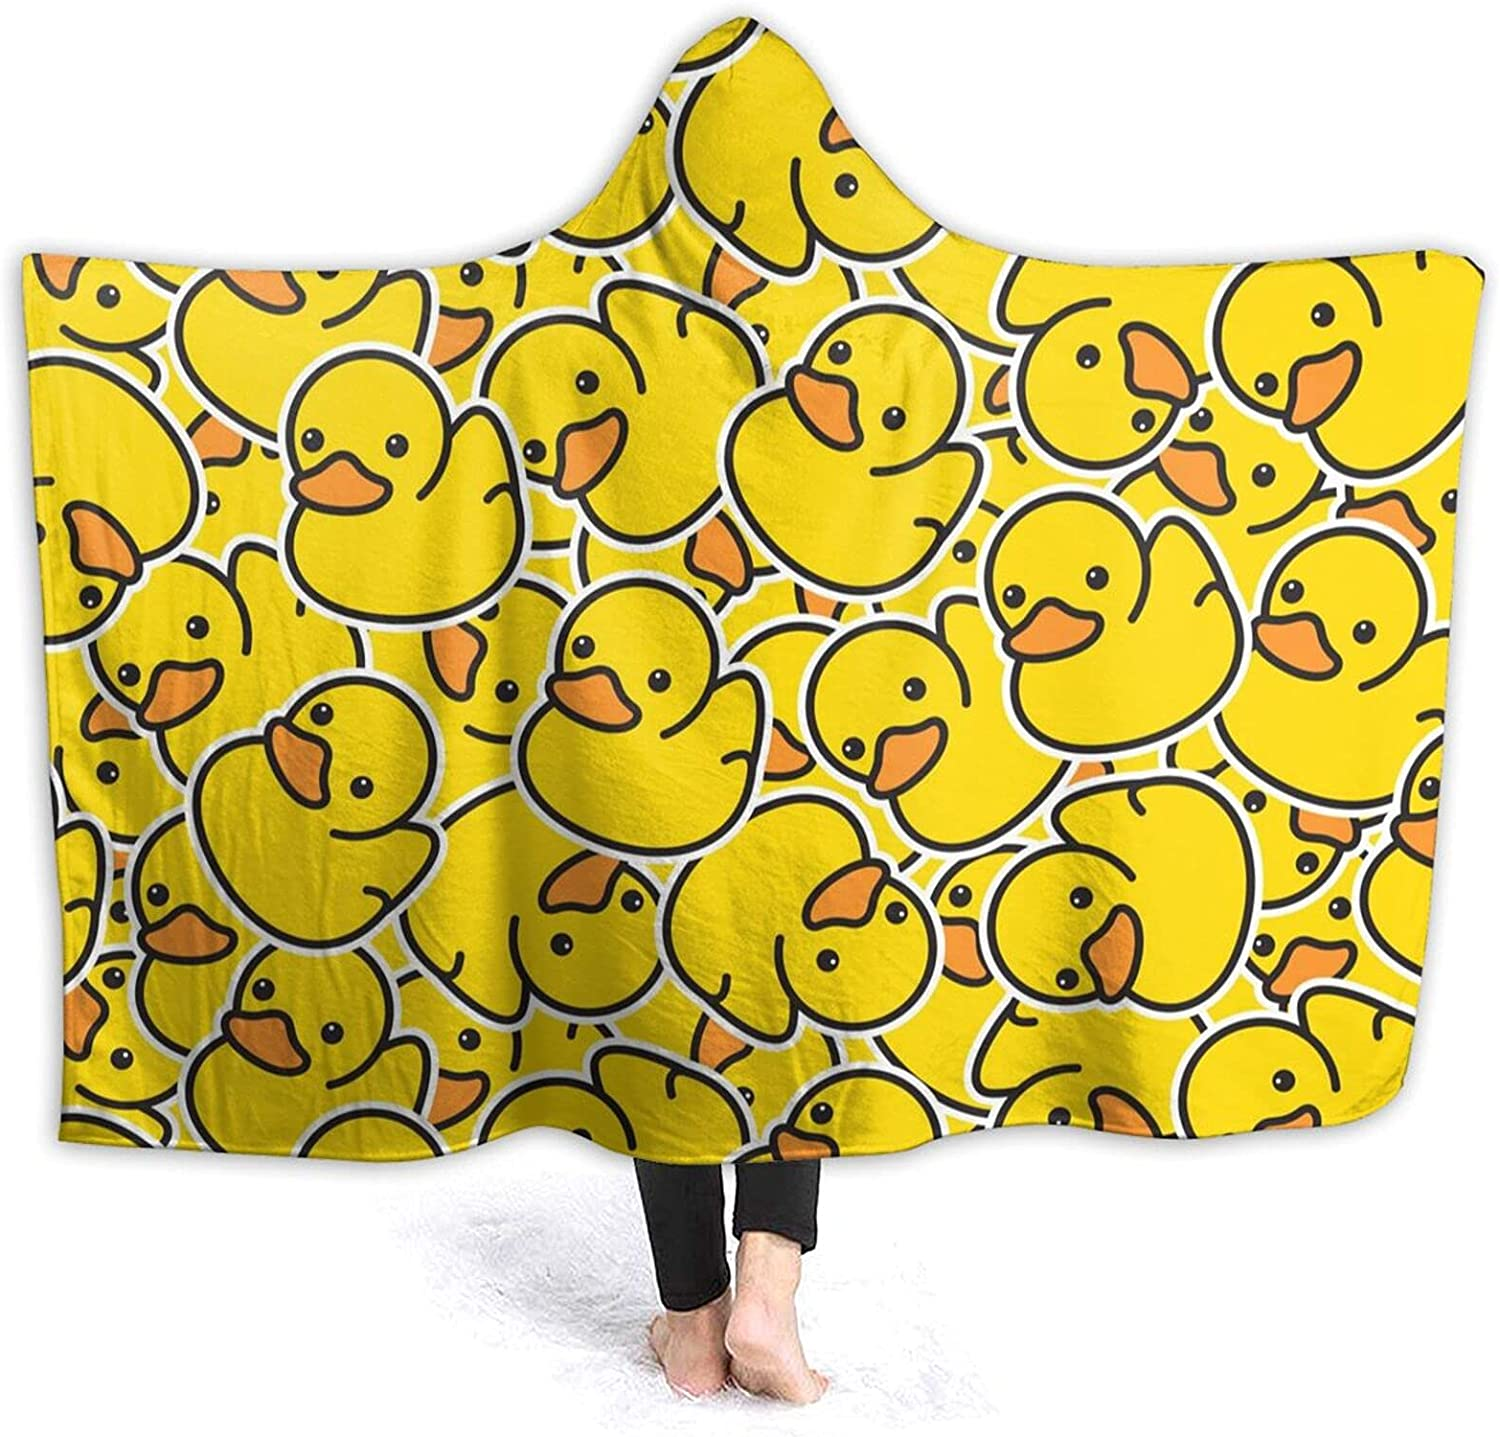 Yello Ducks Hooded Blanket 3D Print T Soft Super Sherpa Selling and 5 ☆ very popular selling Wearable